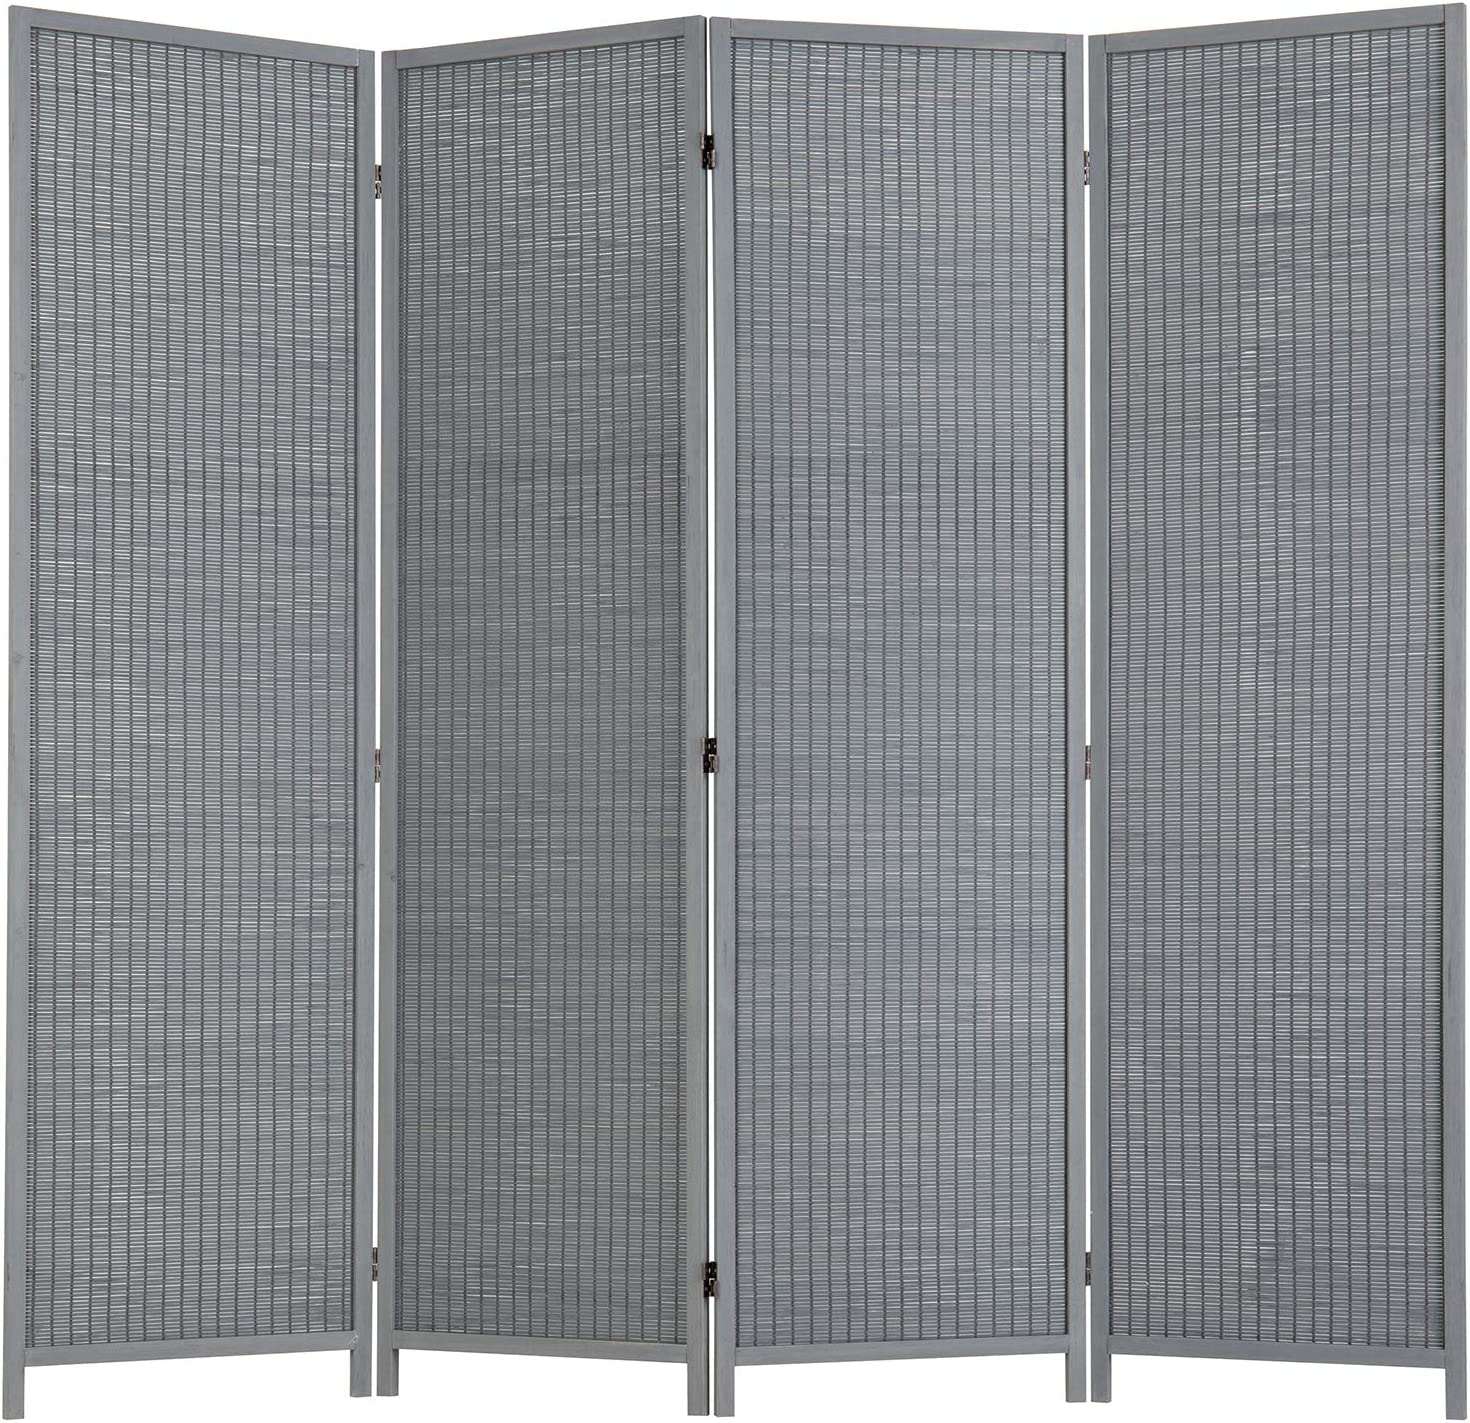 MyGift Max 48% Sale special price OFF 4-Panel Freestanding Contemporary Gray Bamboo Room Woven